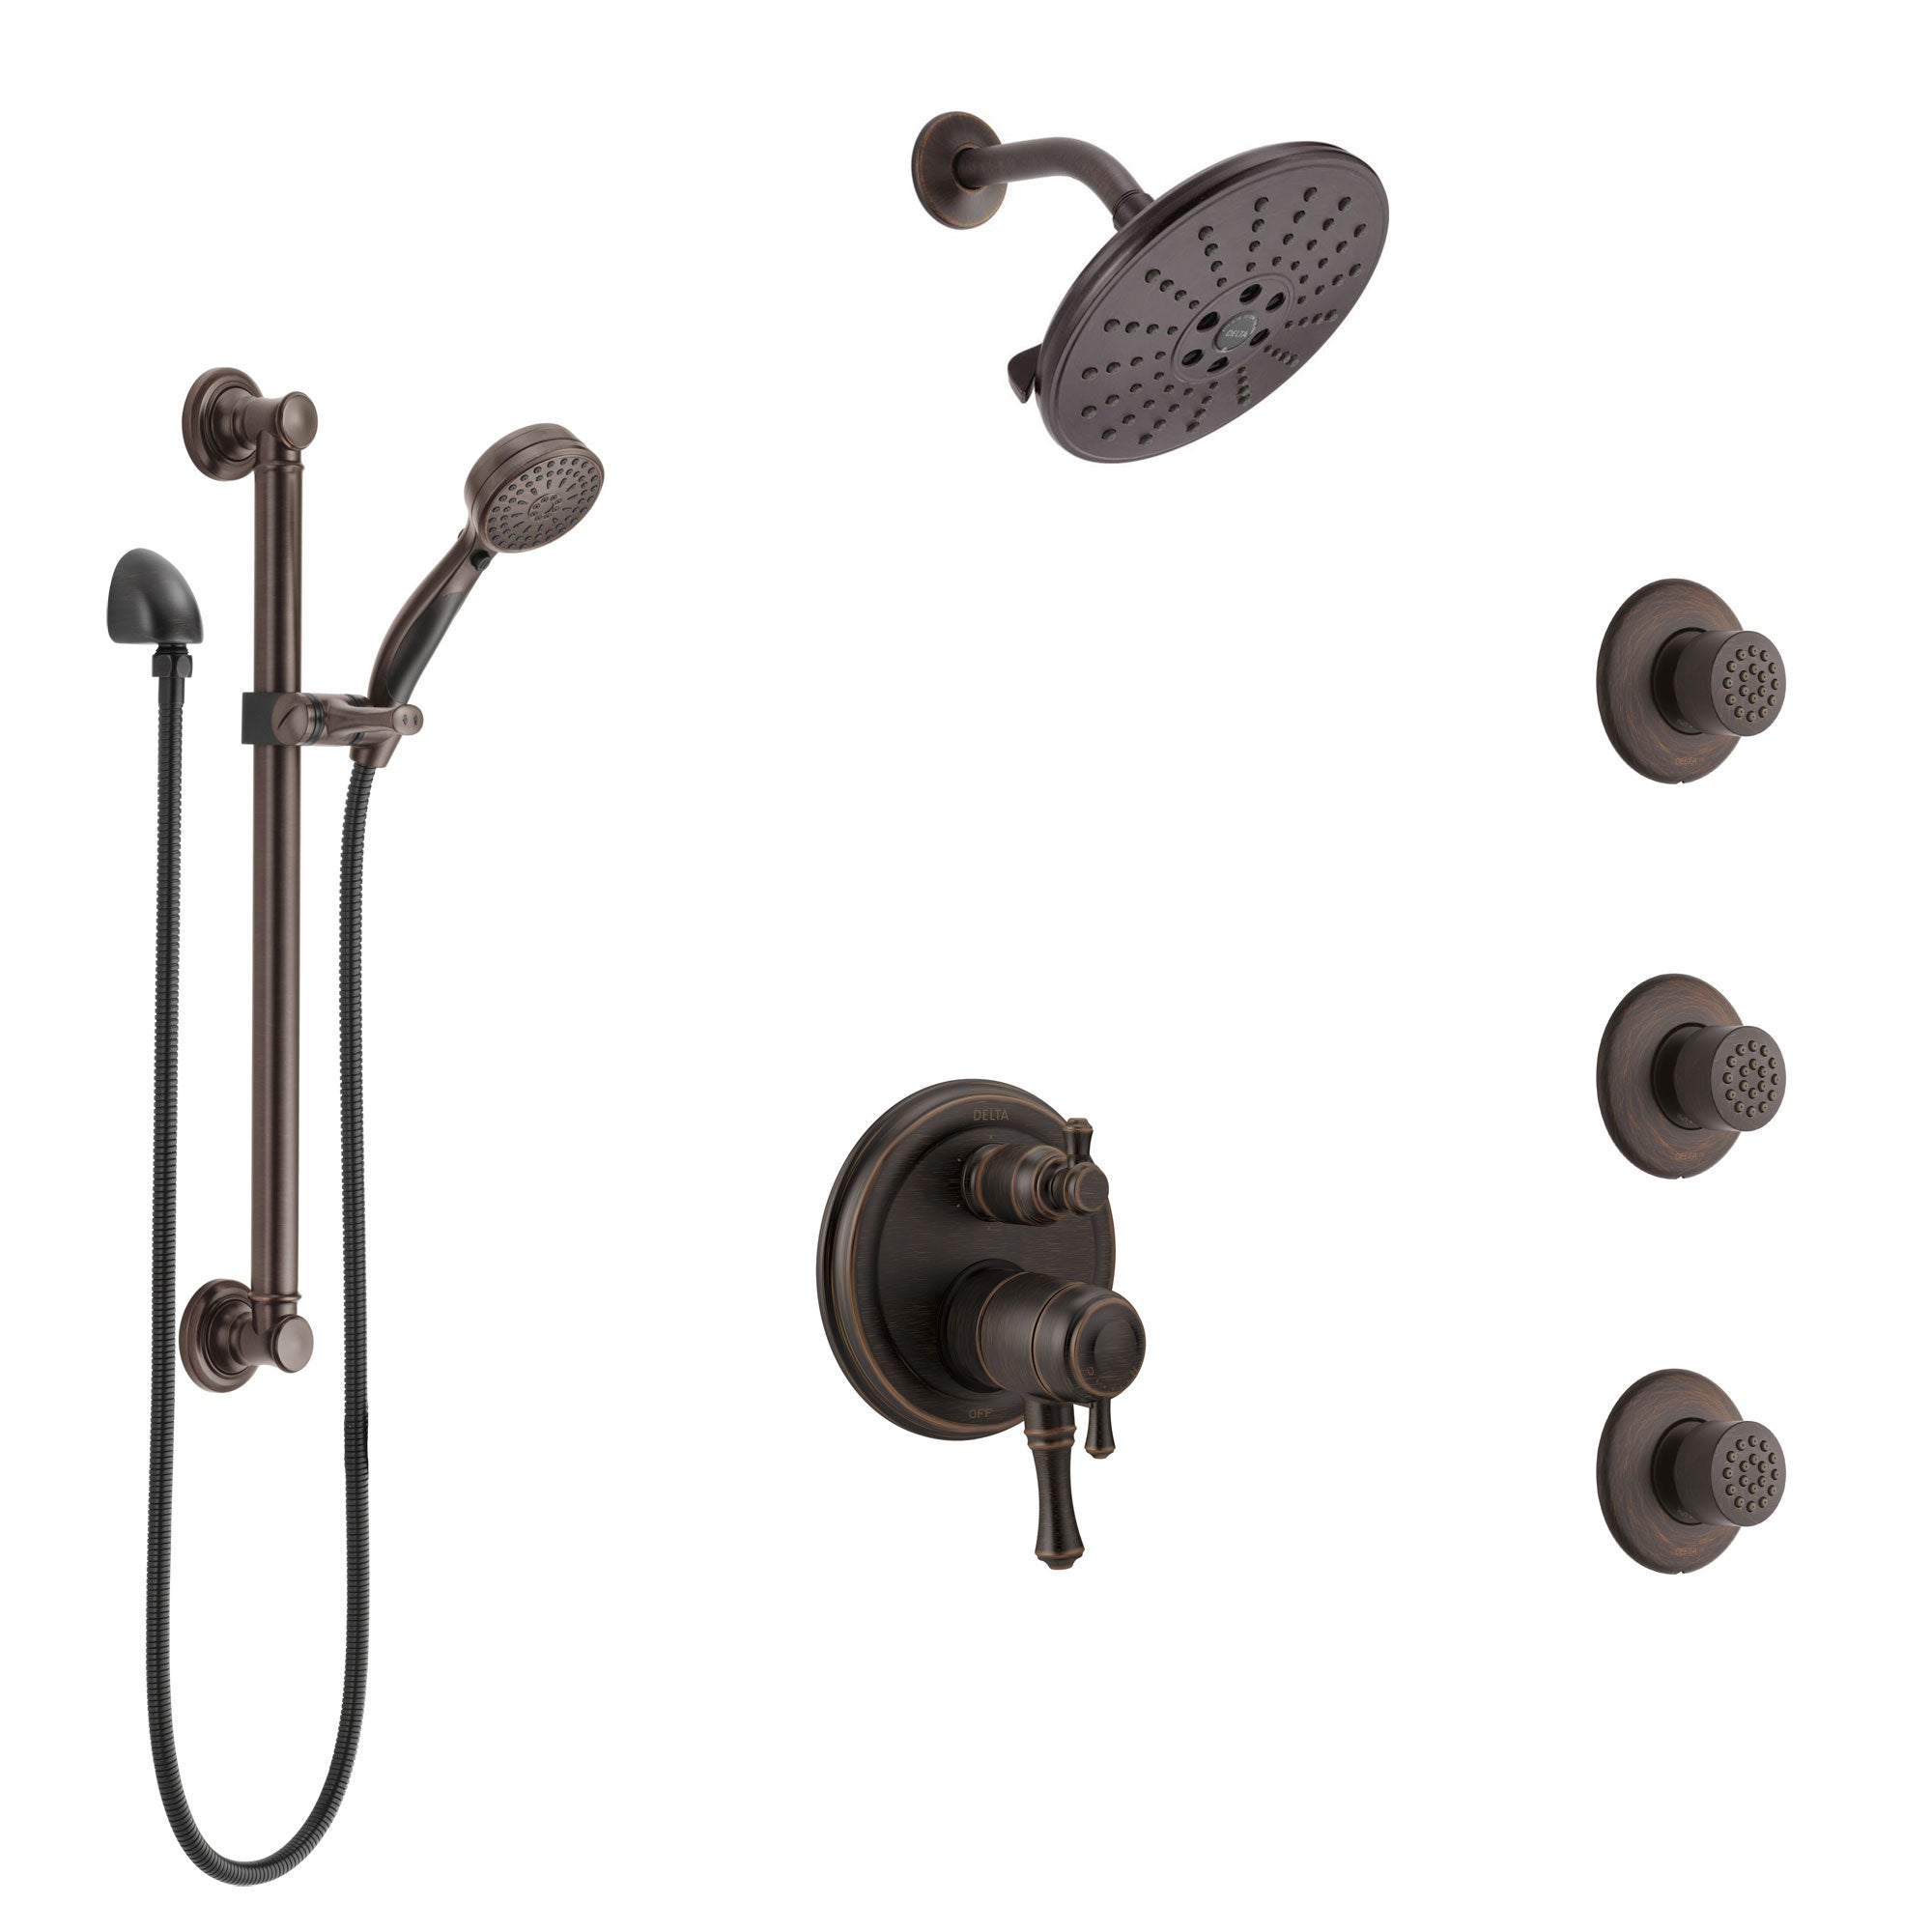 Delta Cassidy Venetian Bronze Shower System with Dual Control Handle, Integrated Diverter, Showerhead, 3 Body Sprays, Grab Bar Hand Spray SS27997RB4